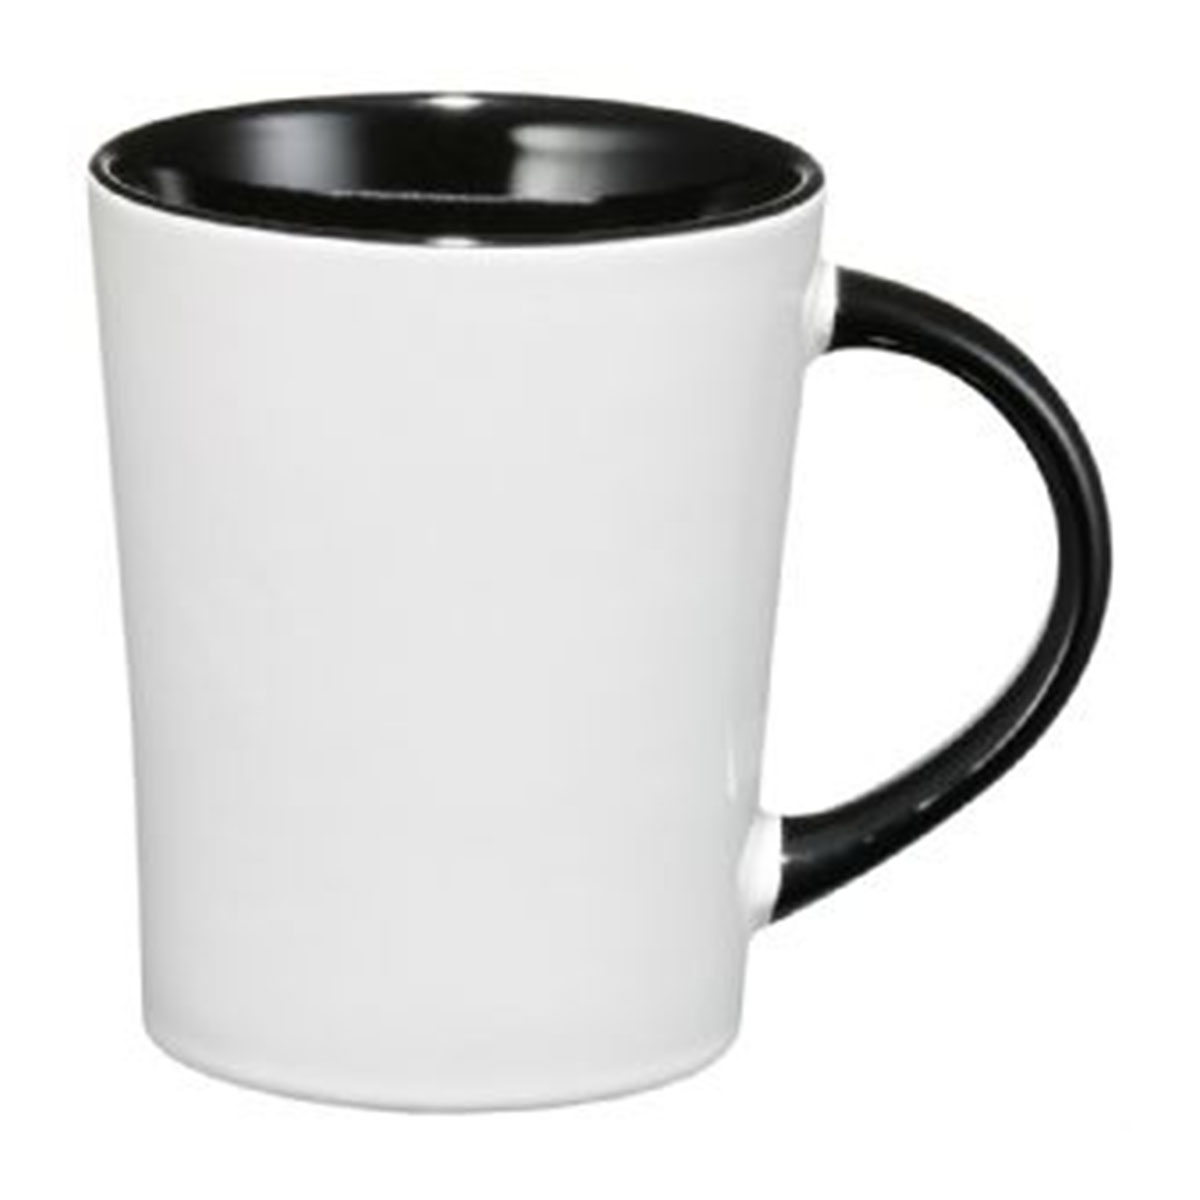 Aura Ceramic Mug-Black with white.